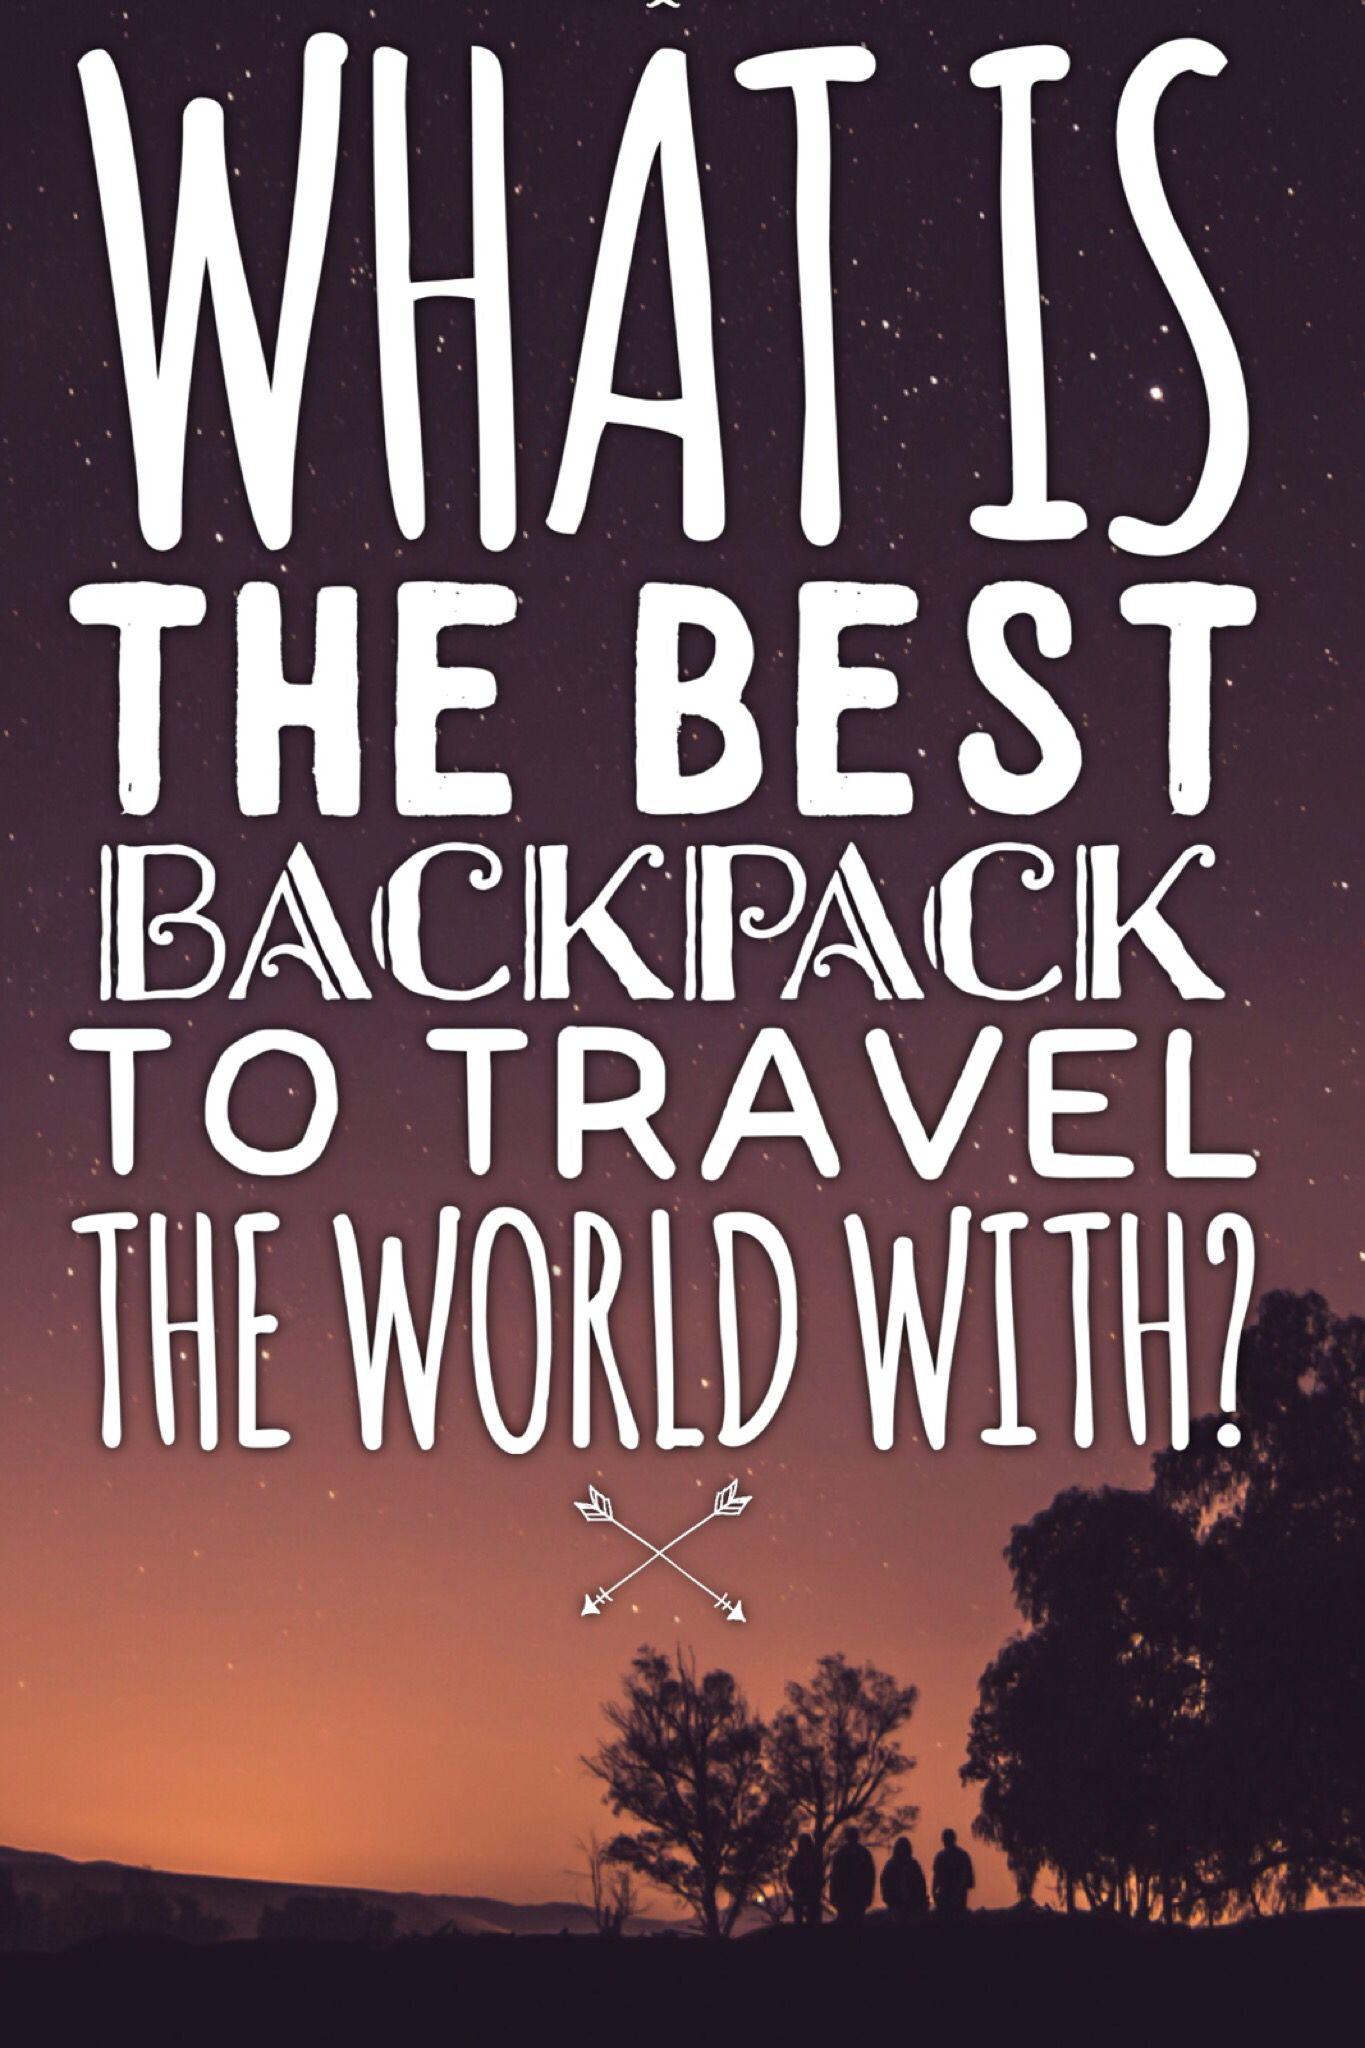 What's the best backpack to travel the world with? The verdict is ...